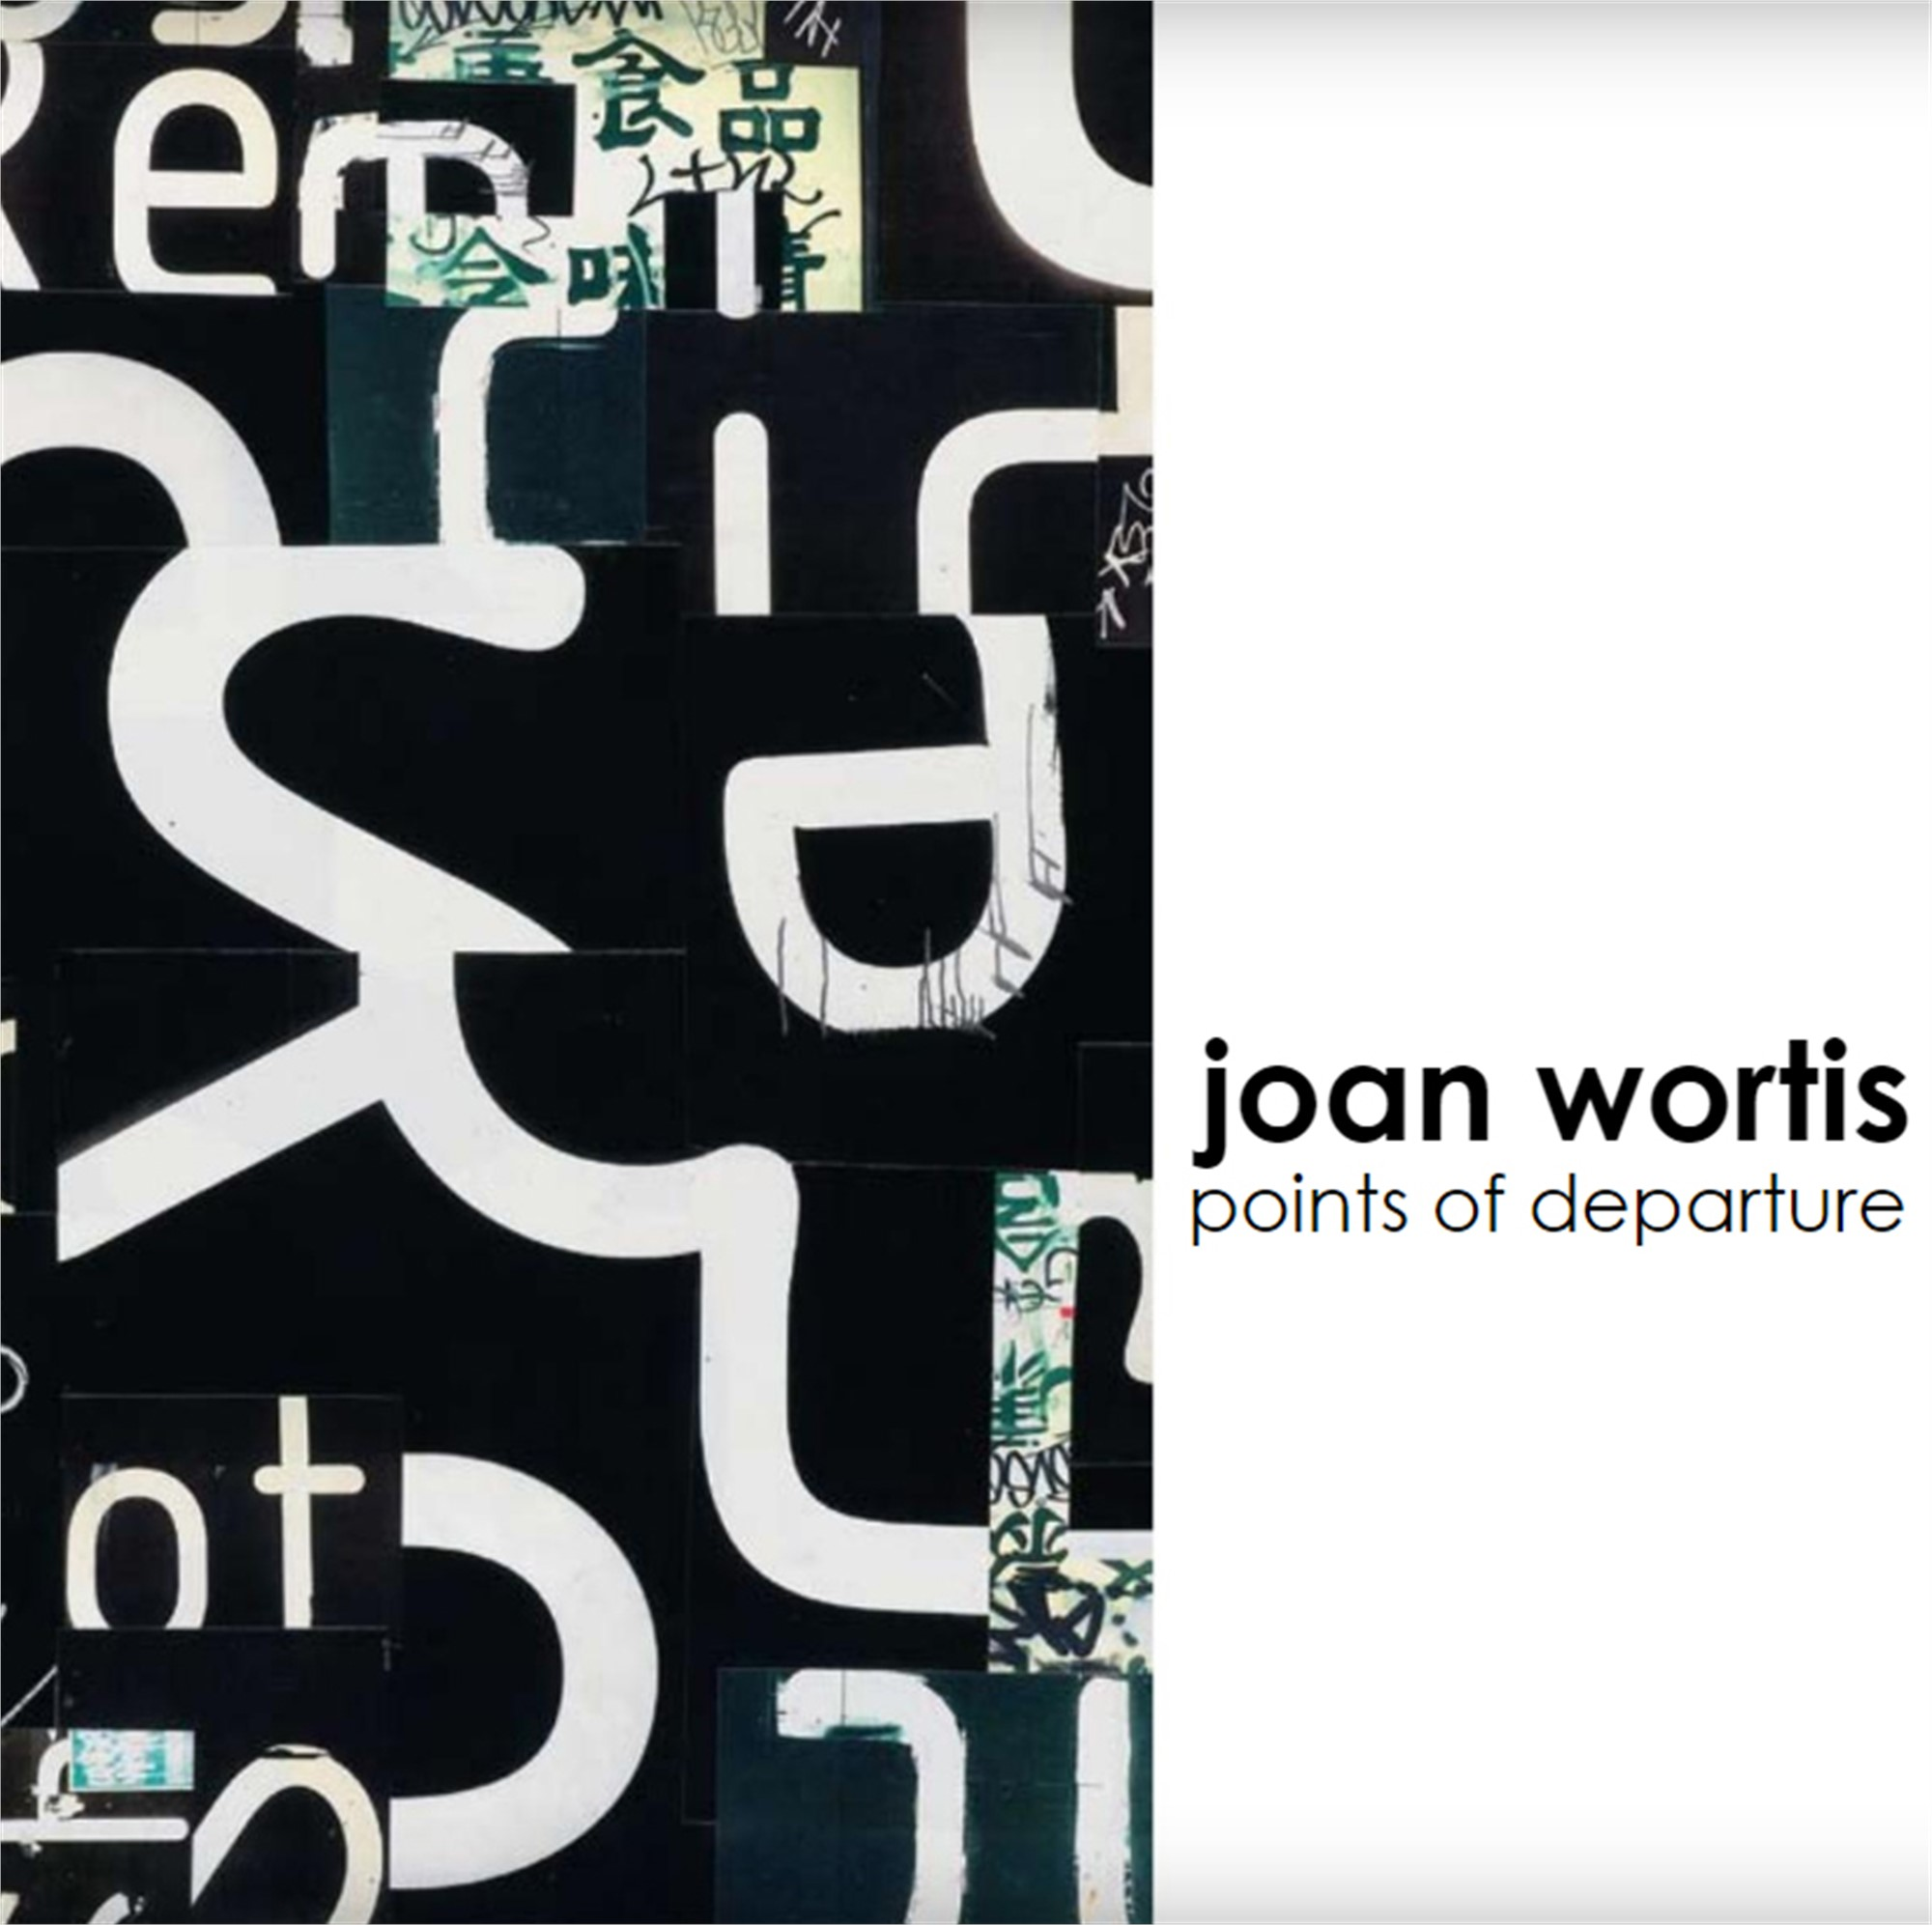 Points of Departure | exhibition catalog by Joan Wortis